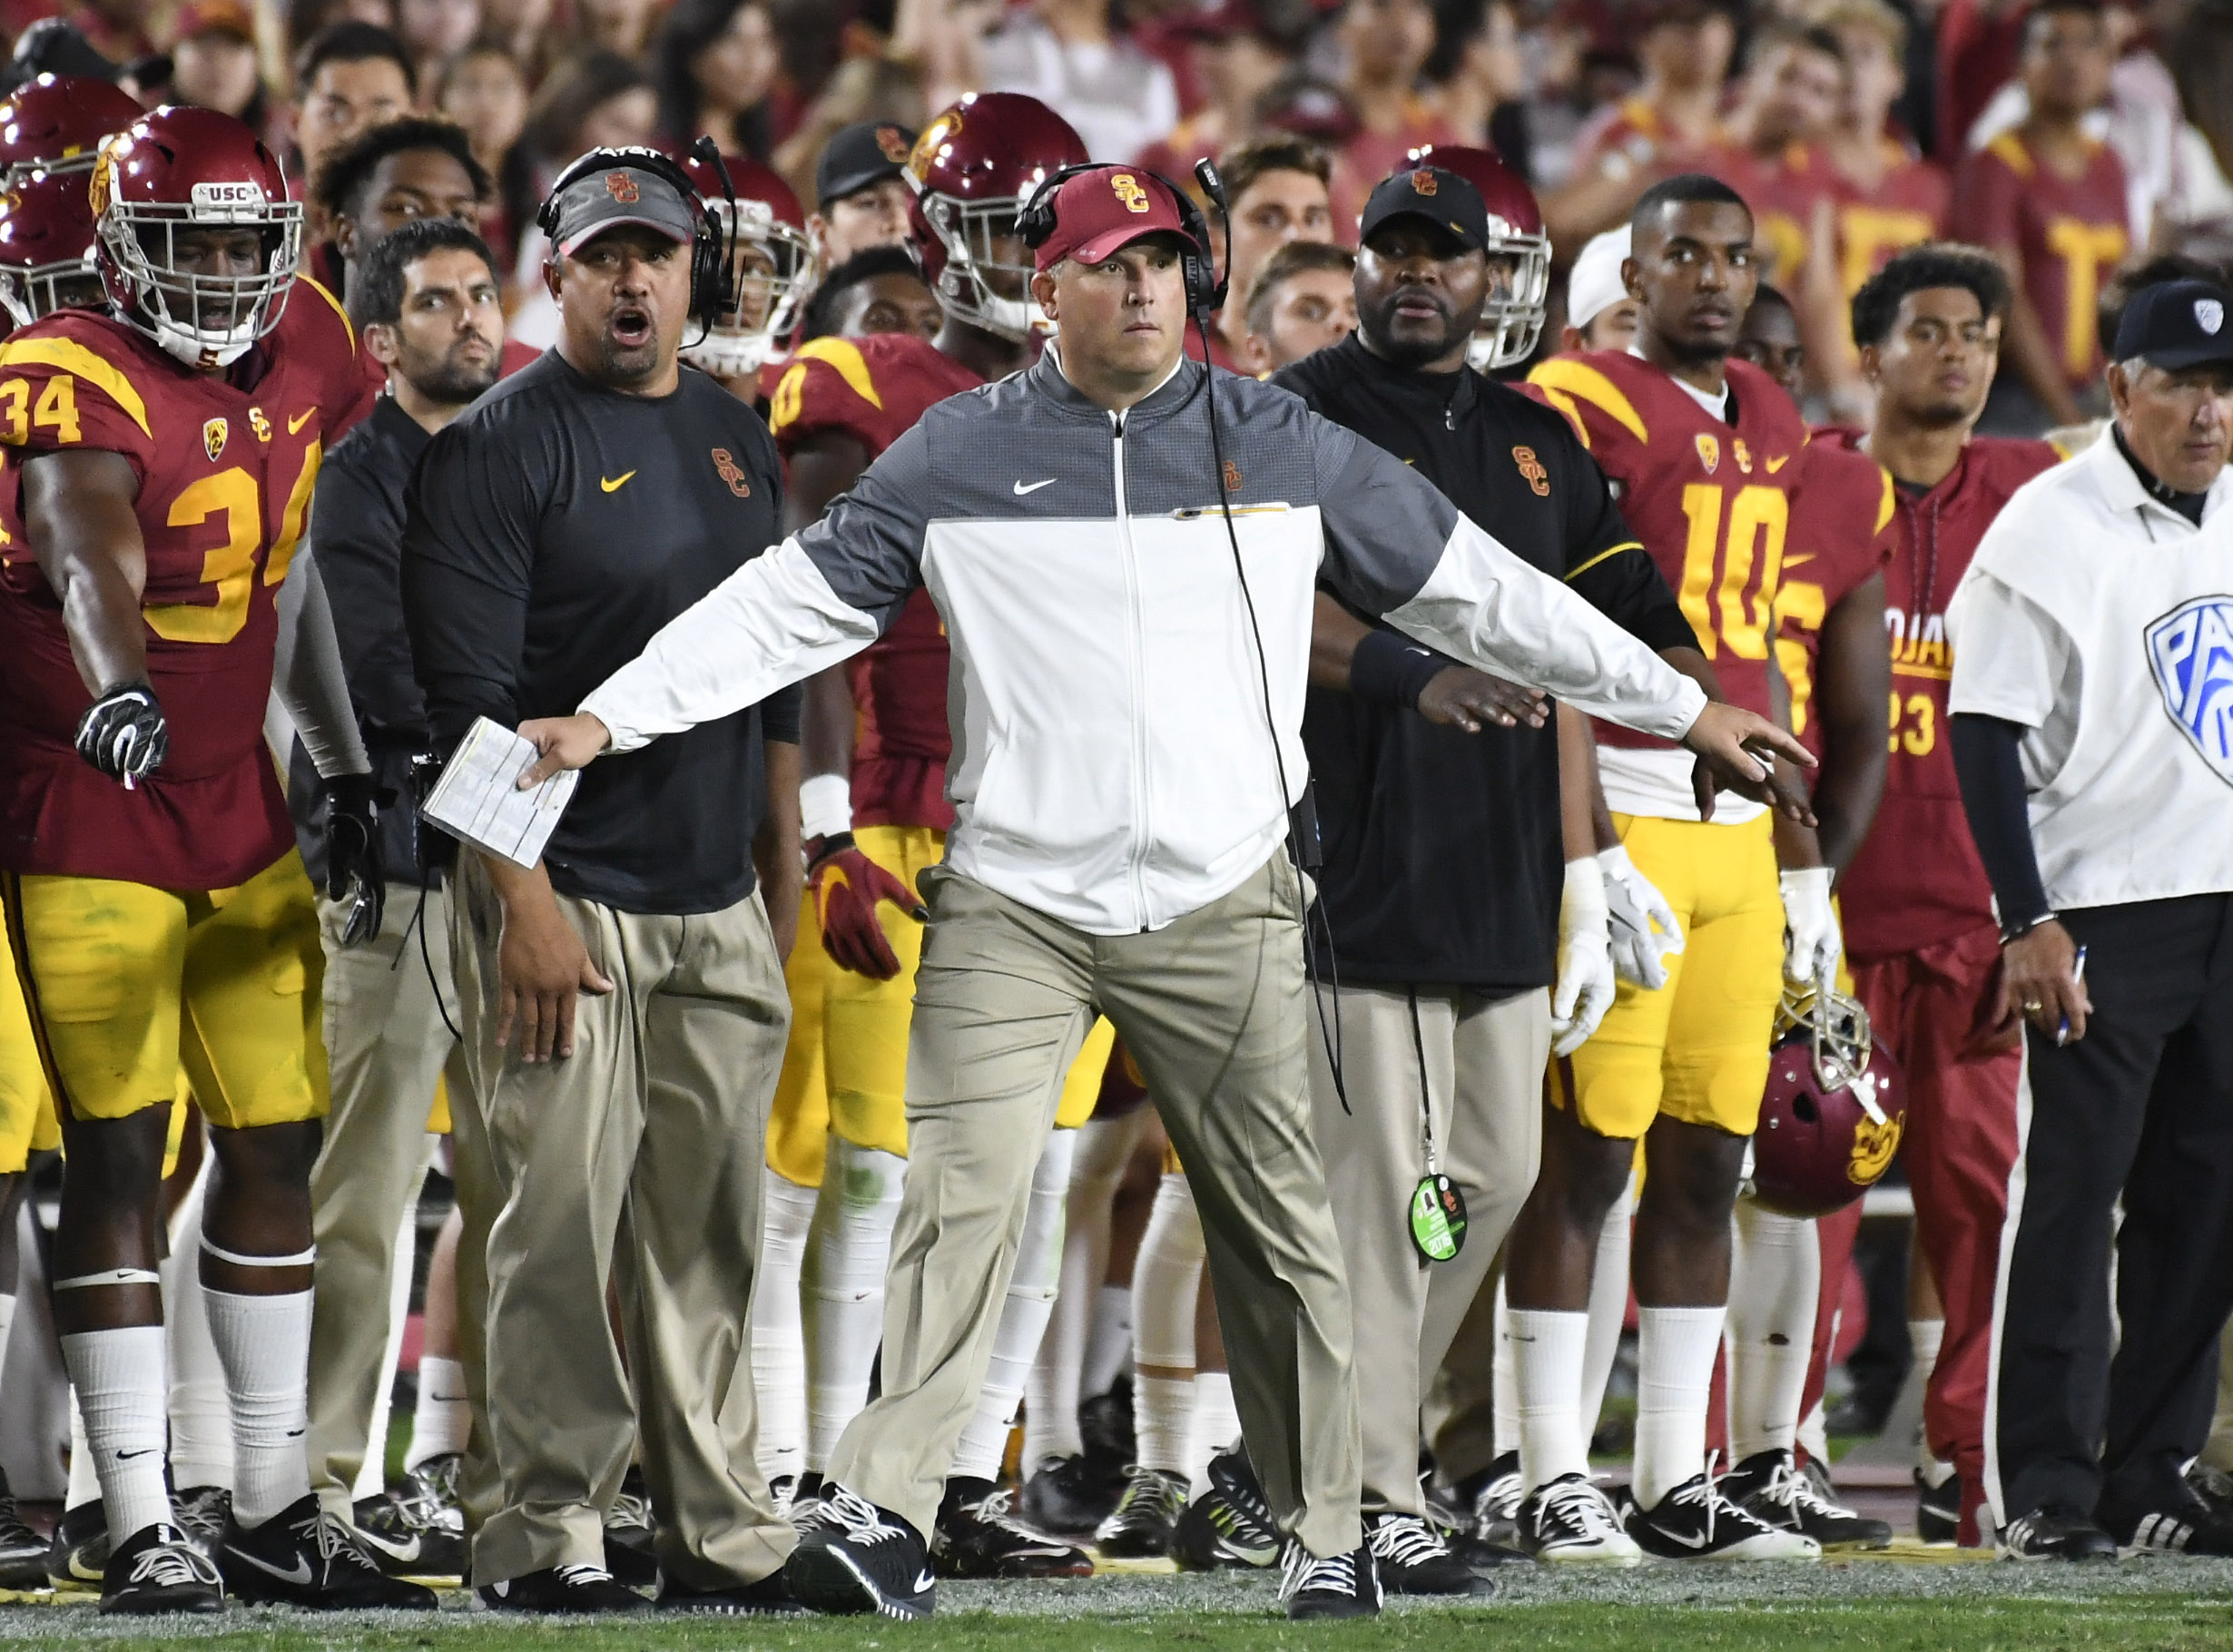 Jones, Darnold power USC to 45-20 win over Oregon